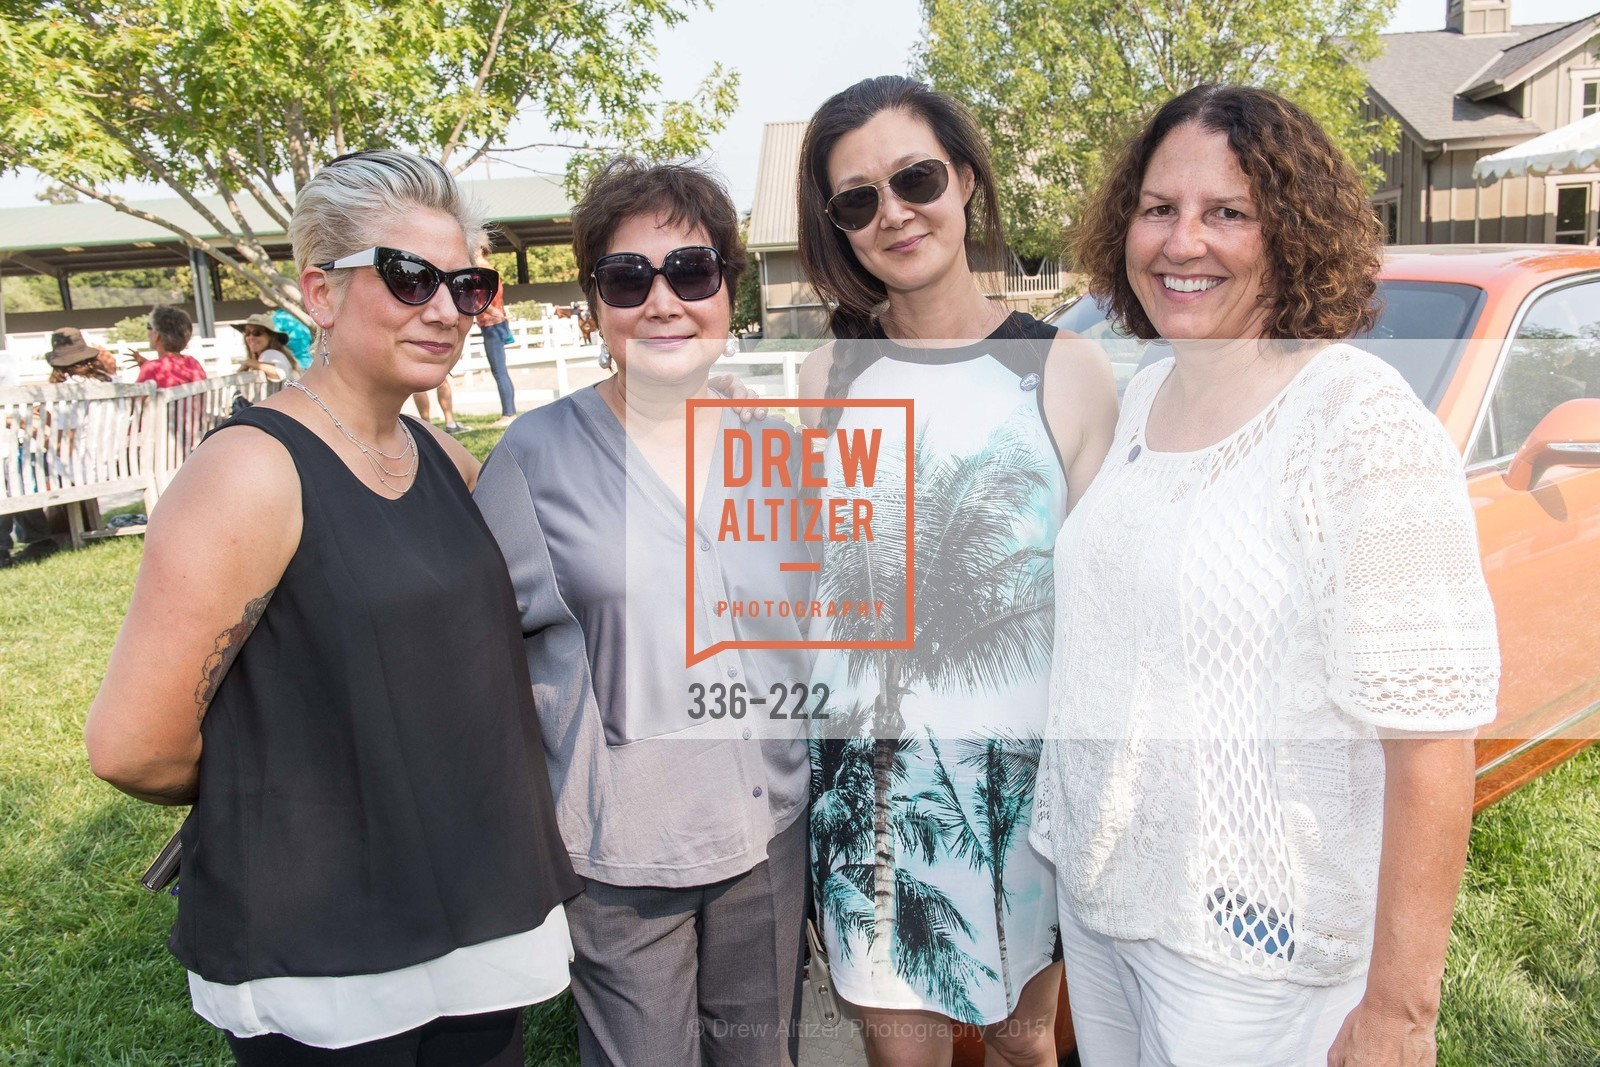 Pamela Diaz, Rita Yang, Lavinia Branden, Dorene Loew, Bentley Tailgate Party Benefiting the Menlo Charity Horse Show, Menlo Circus Club, August 8th, 2015,Drew Altizer, Drew Altizer Photography, full-service agency, private events, San Francisco photographer, photographer california